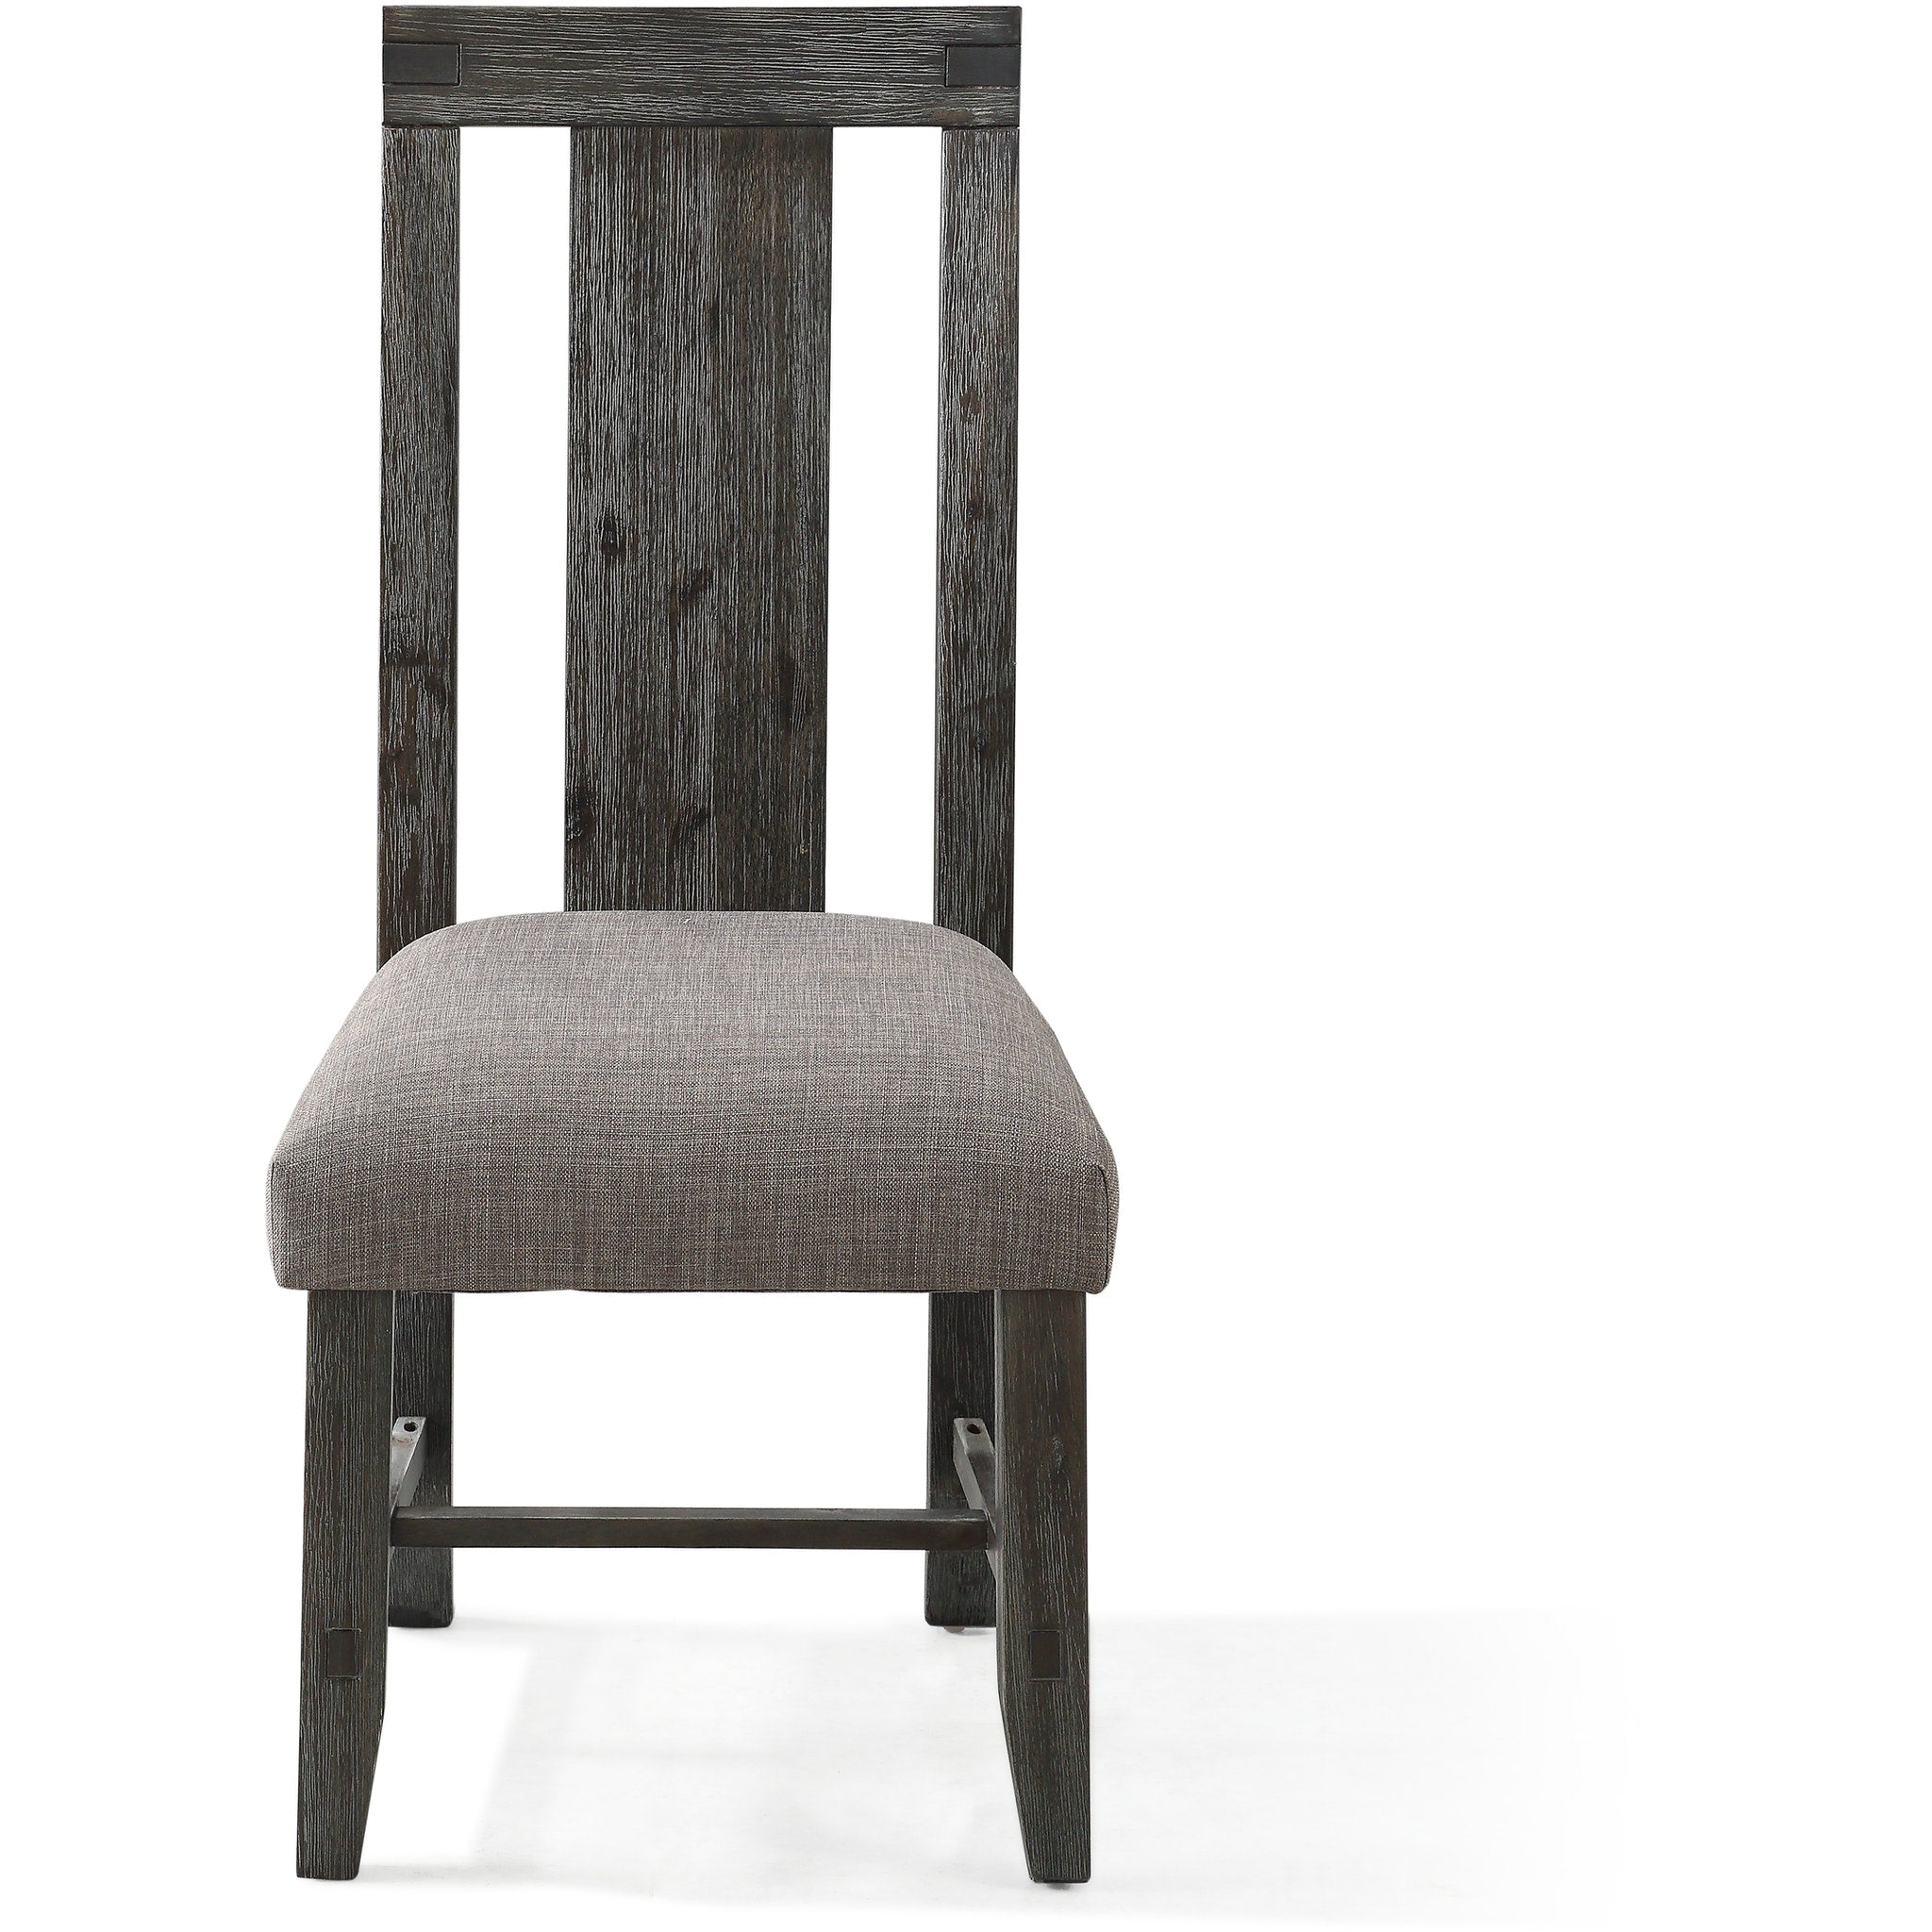 Meadow Solid Wood Uphostered Panel-Back Chair